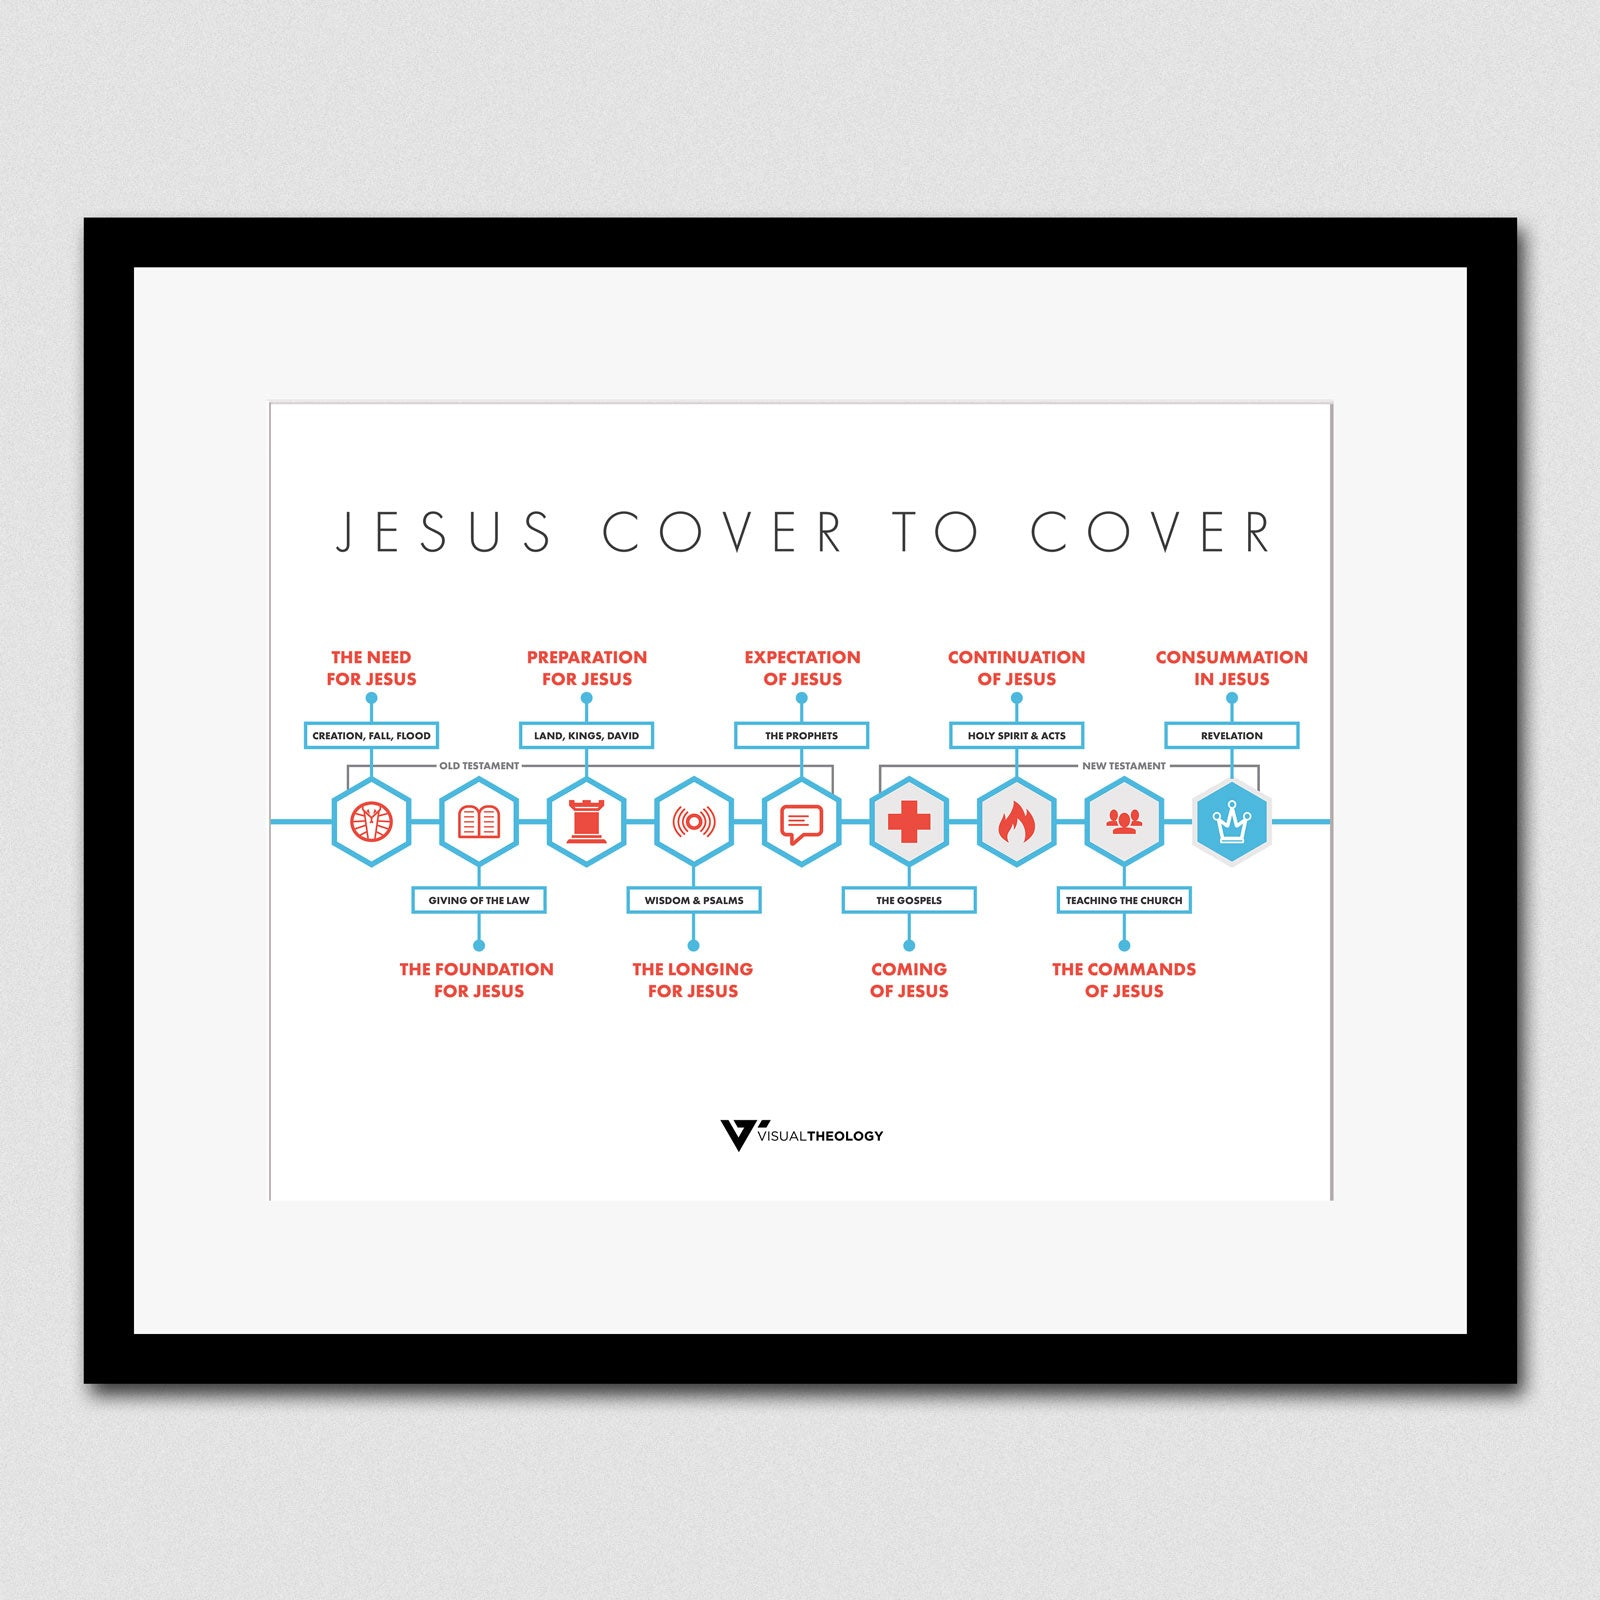 Jesus Cover to Cover